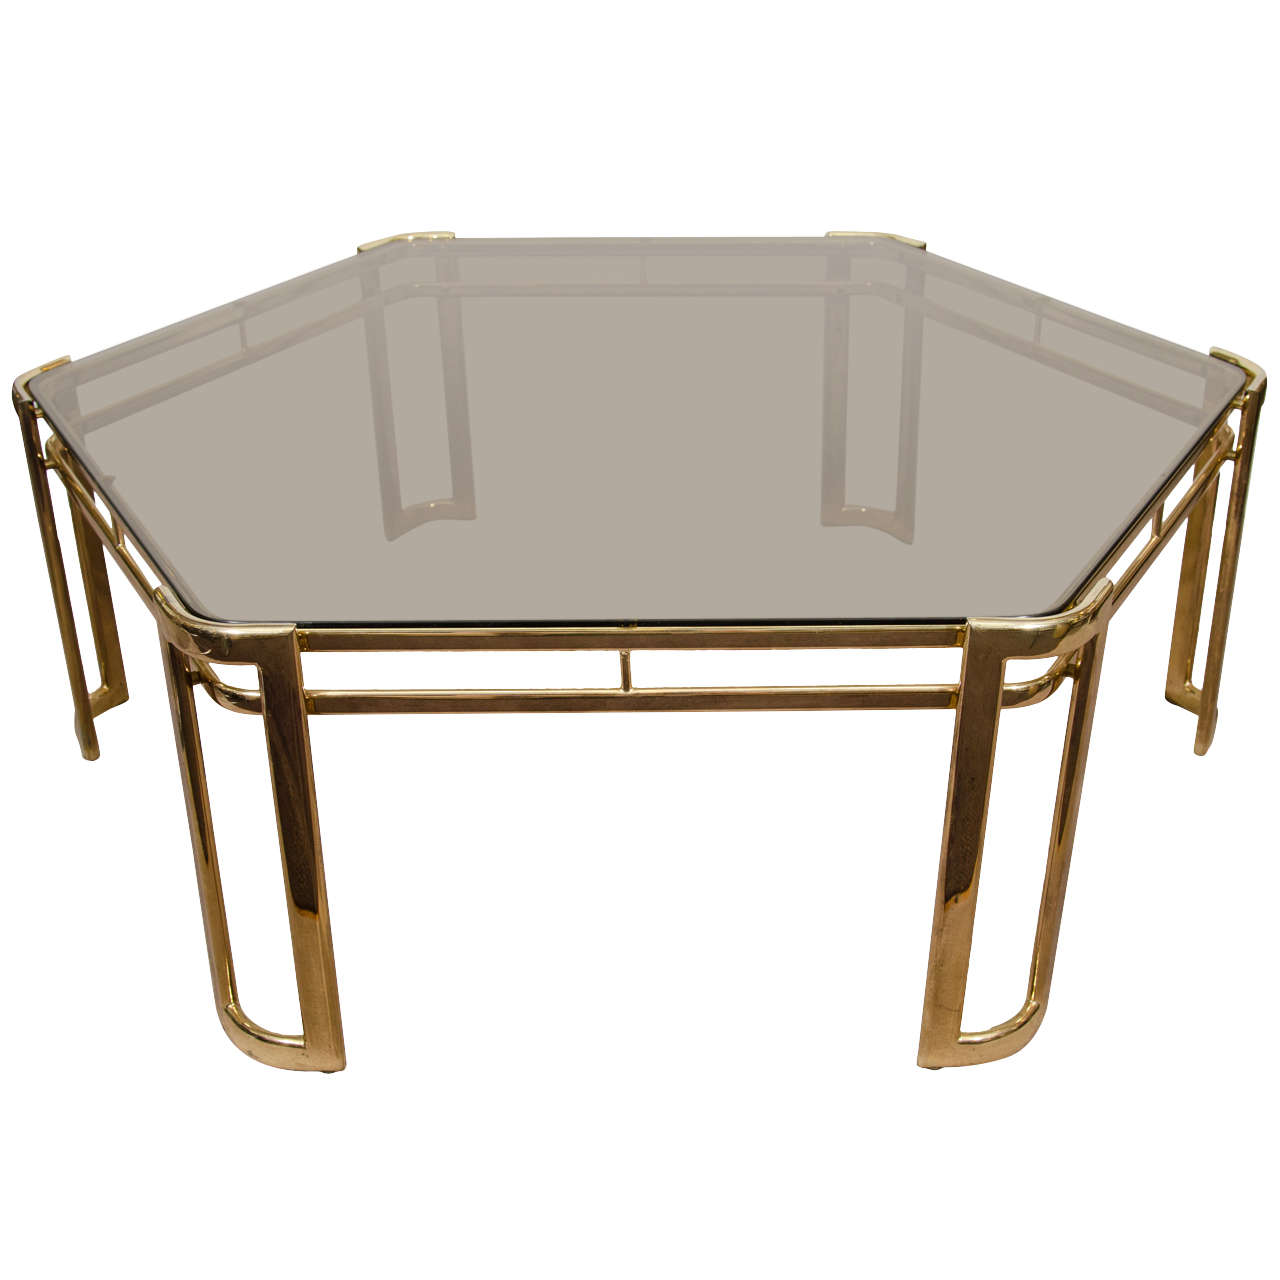 Midcentury Brass Plated Hexagonal Coffee Or Cocktail Table For Sale